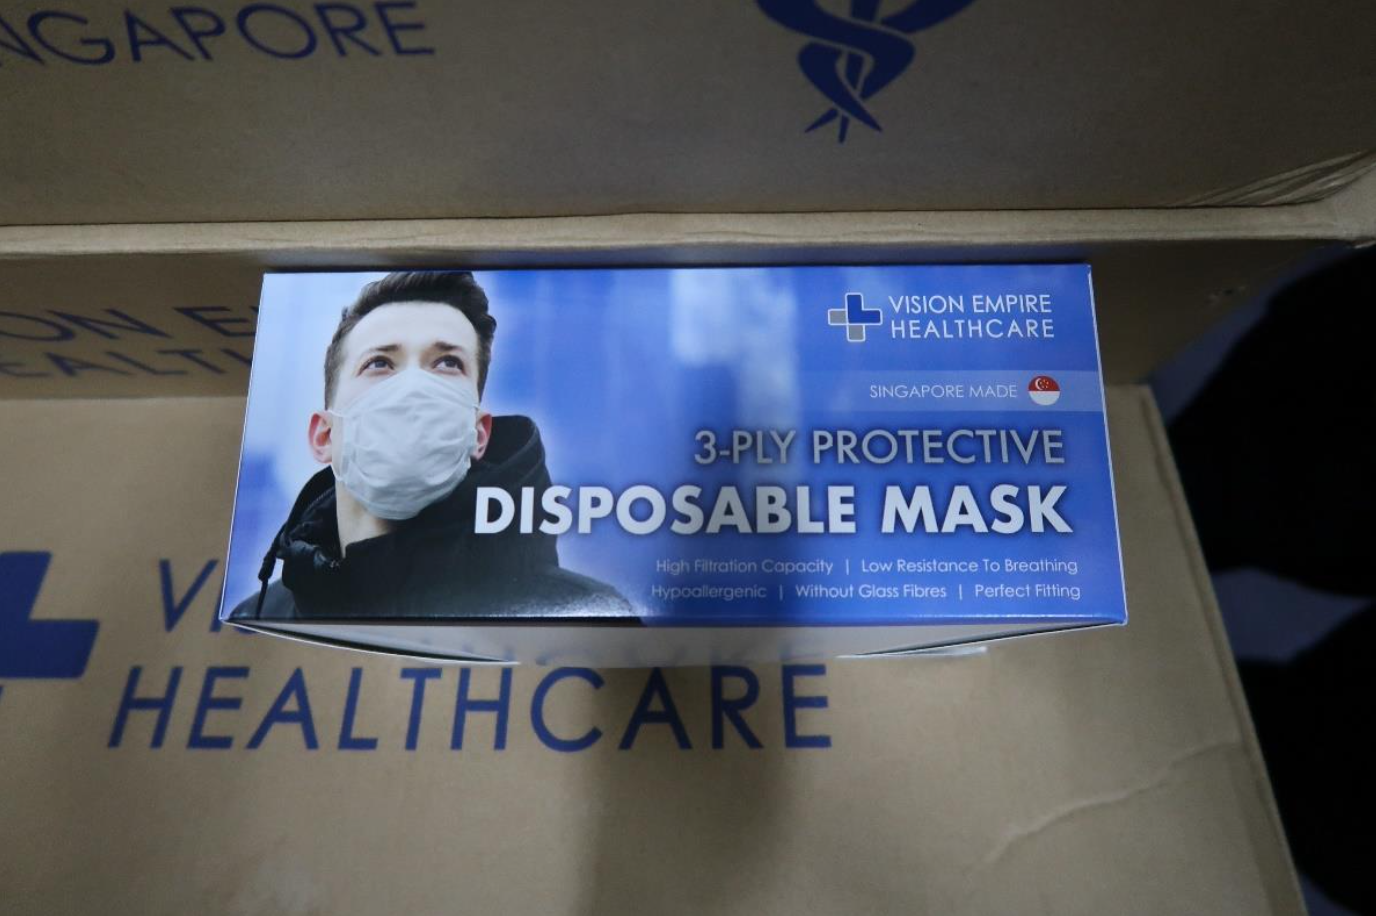 HSA busts Vision Empire illegal mask manufacturing facility